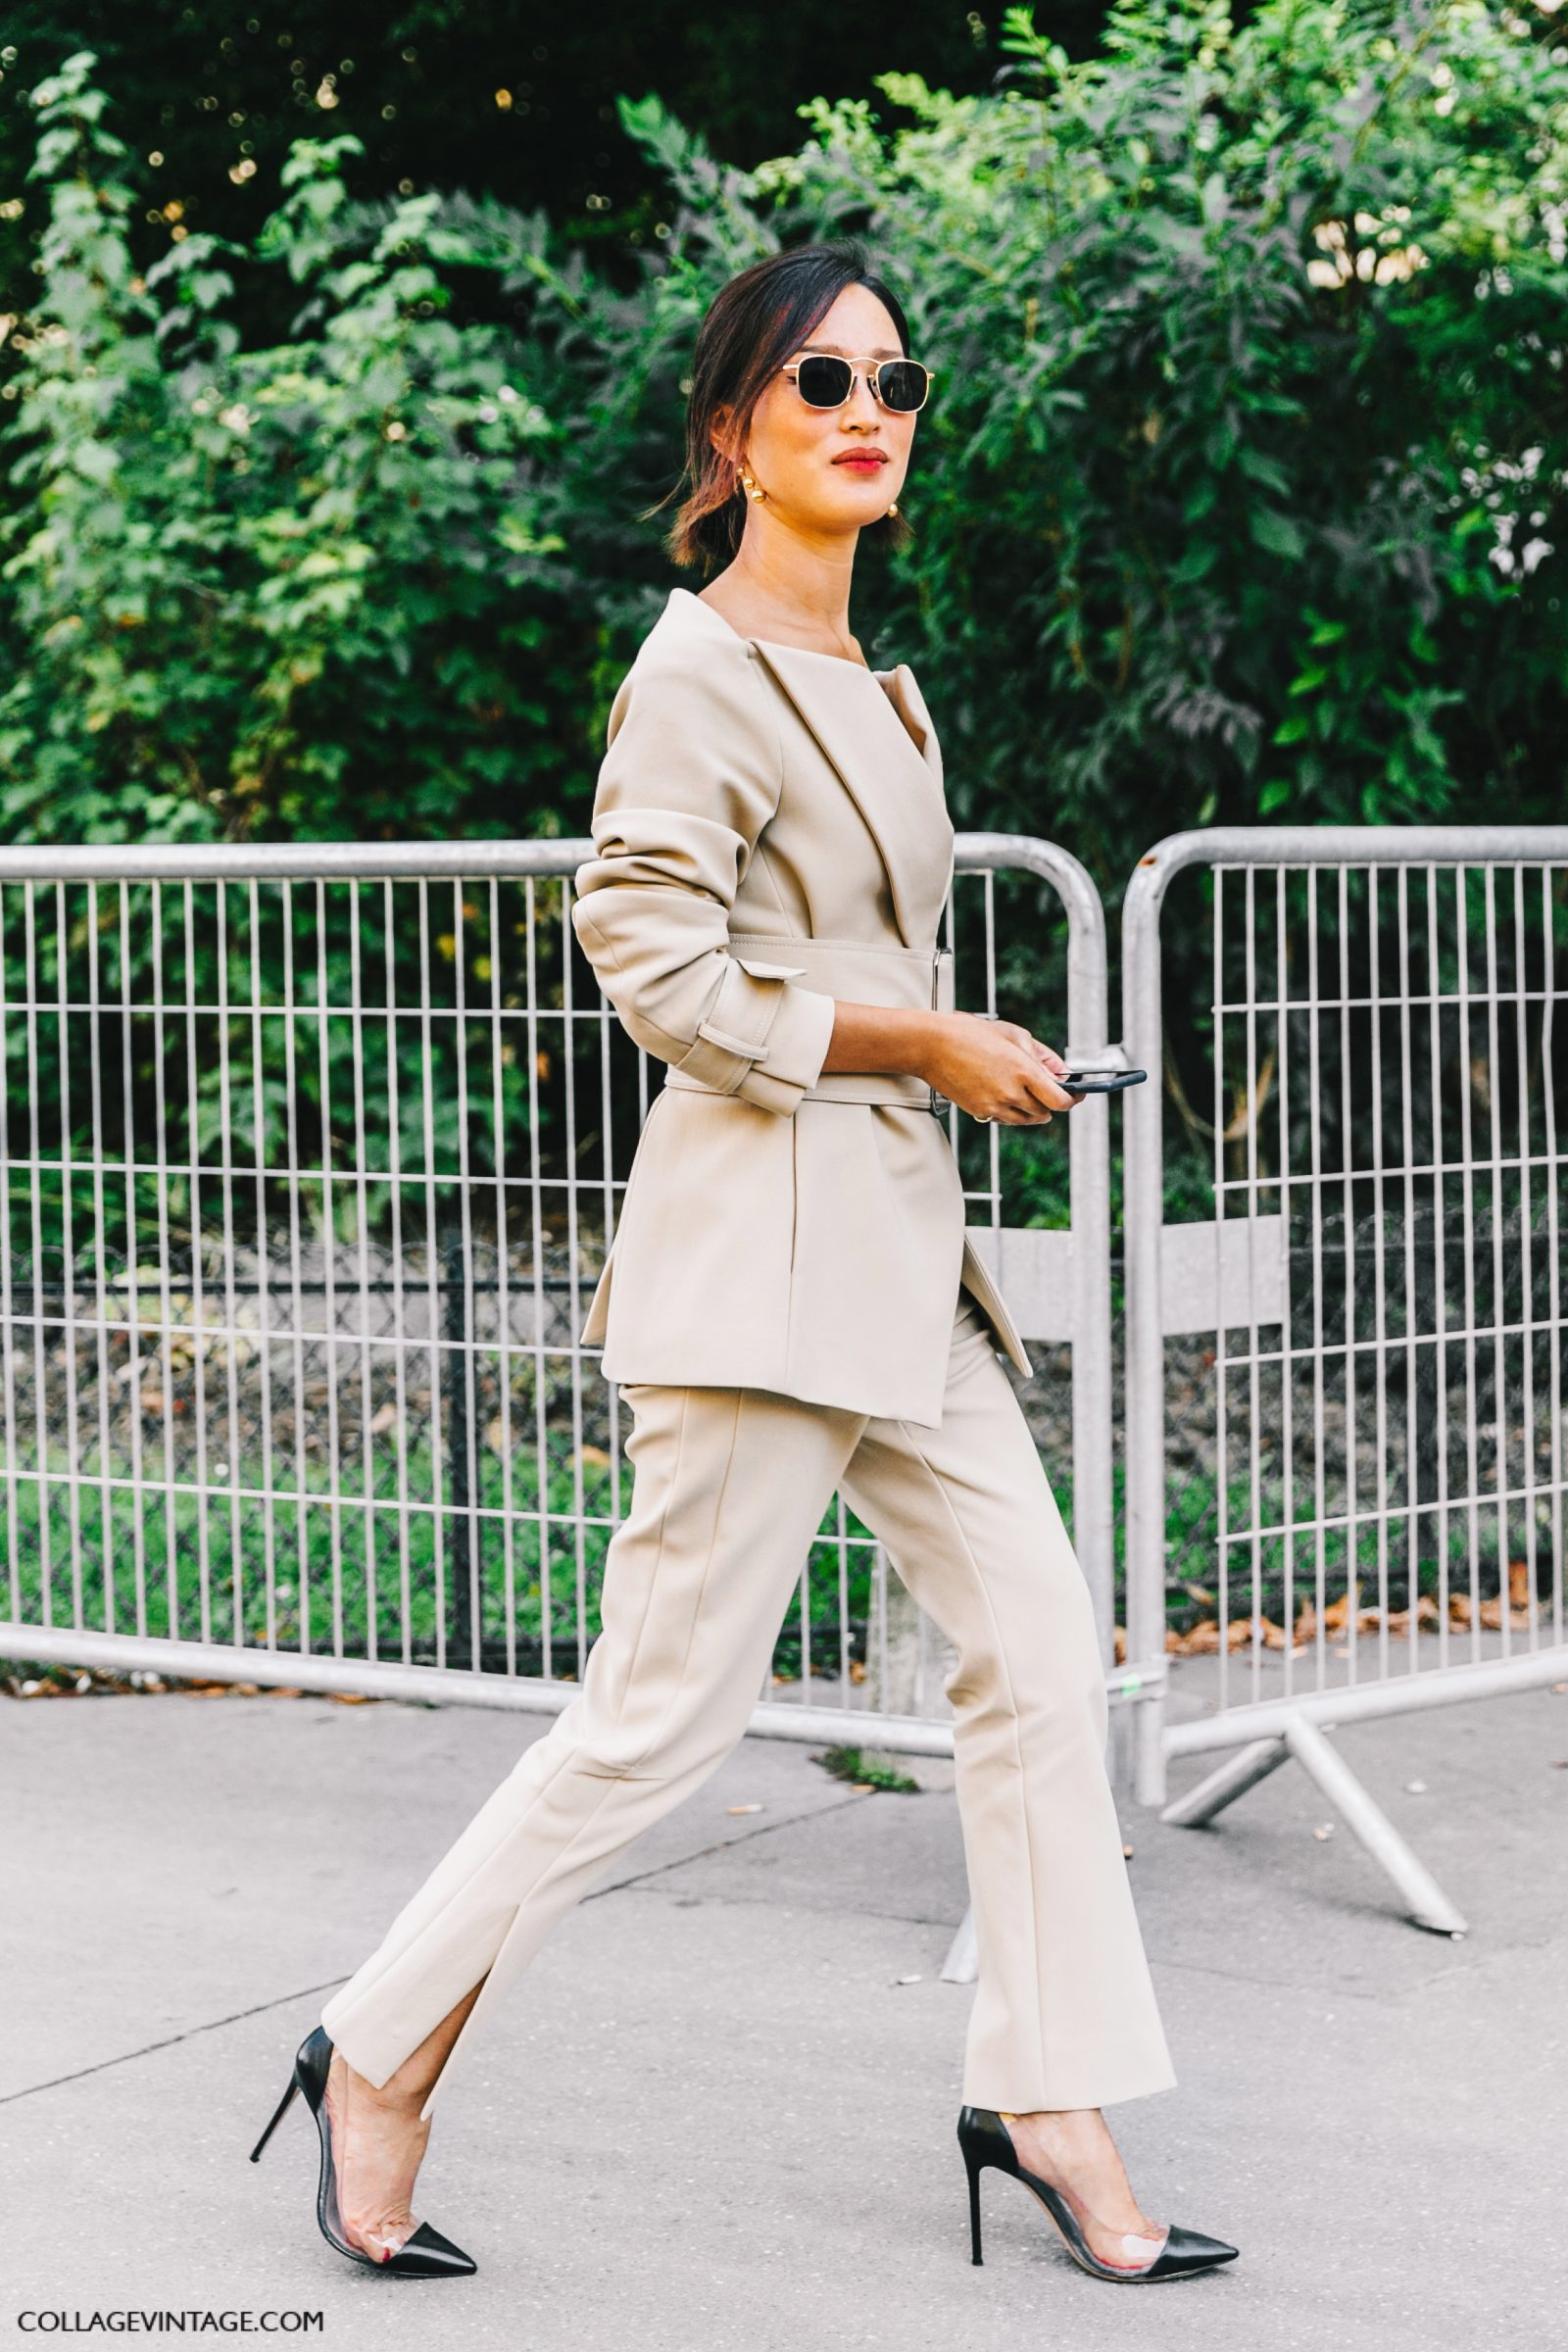 pfw-paris_fashion_week_ss17-street_style-outfits-collage_vintage-olympia_letan-hermes-stella_mccartney-sacai-148